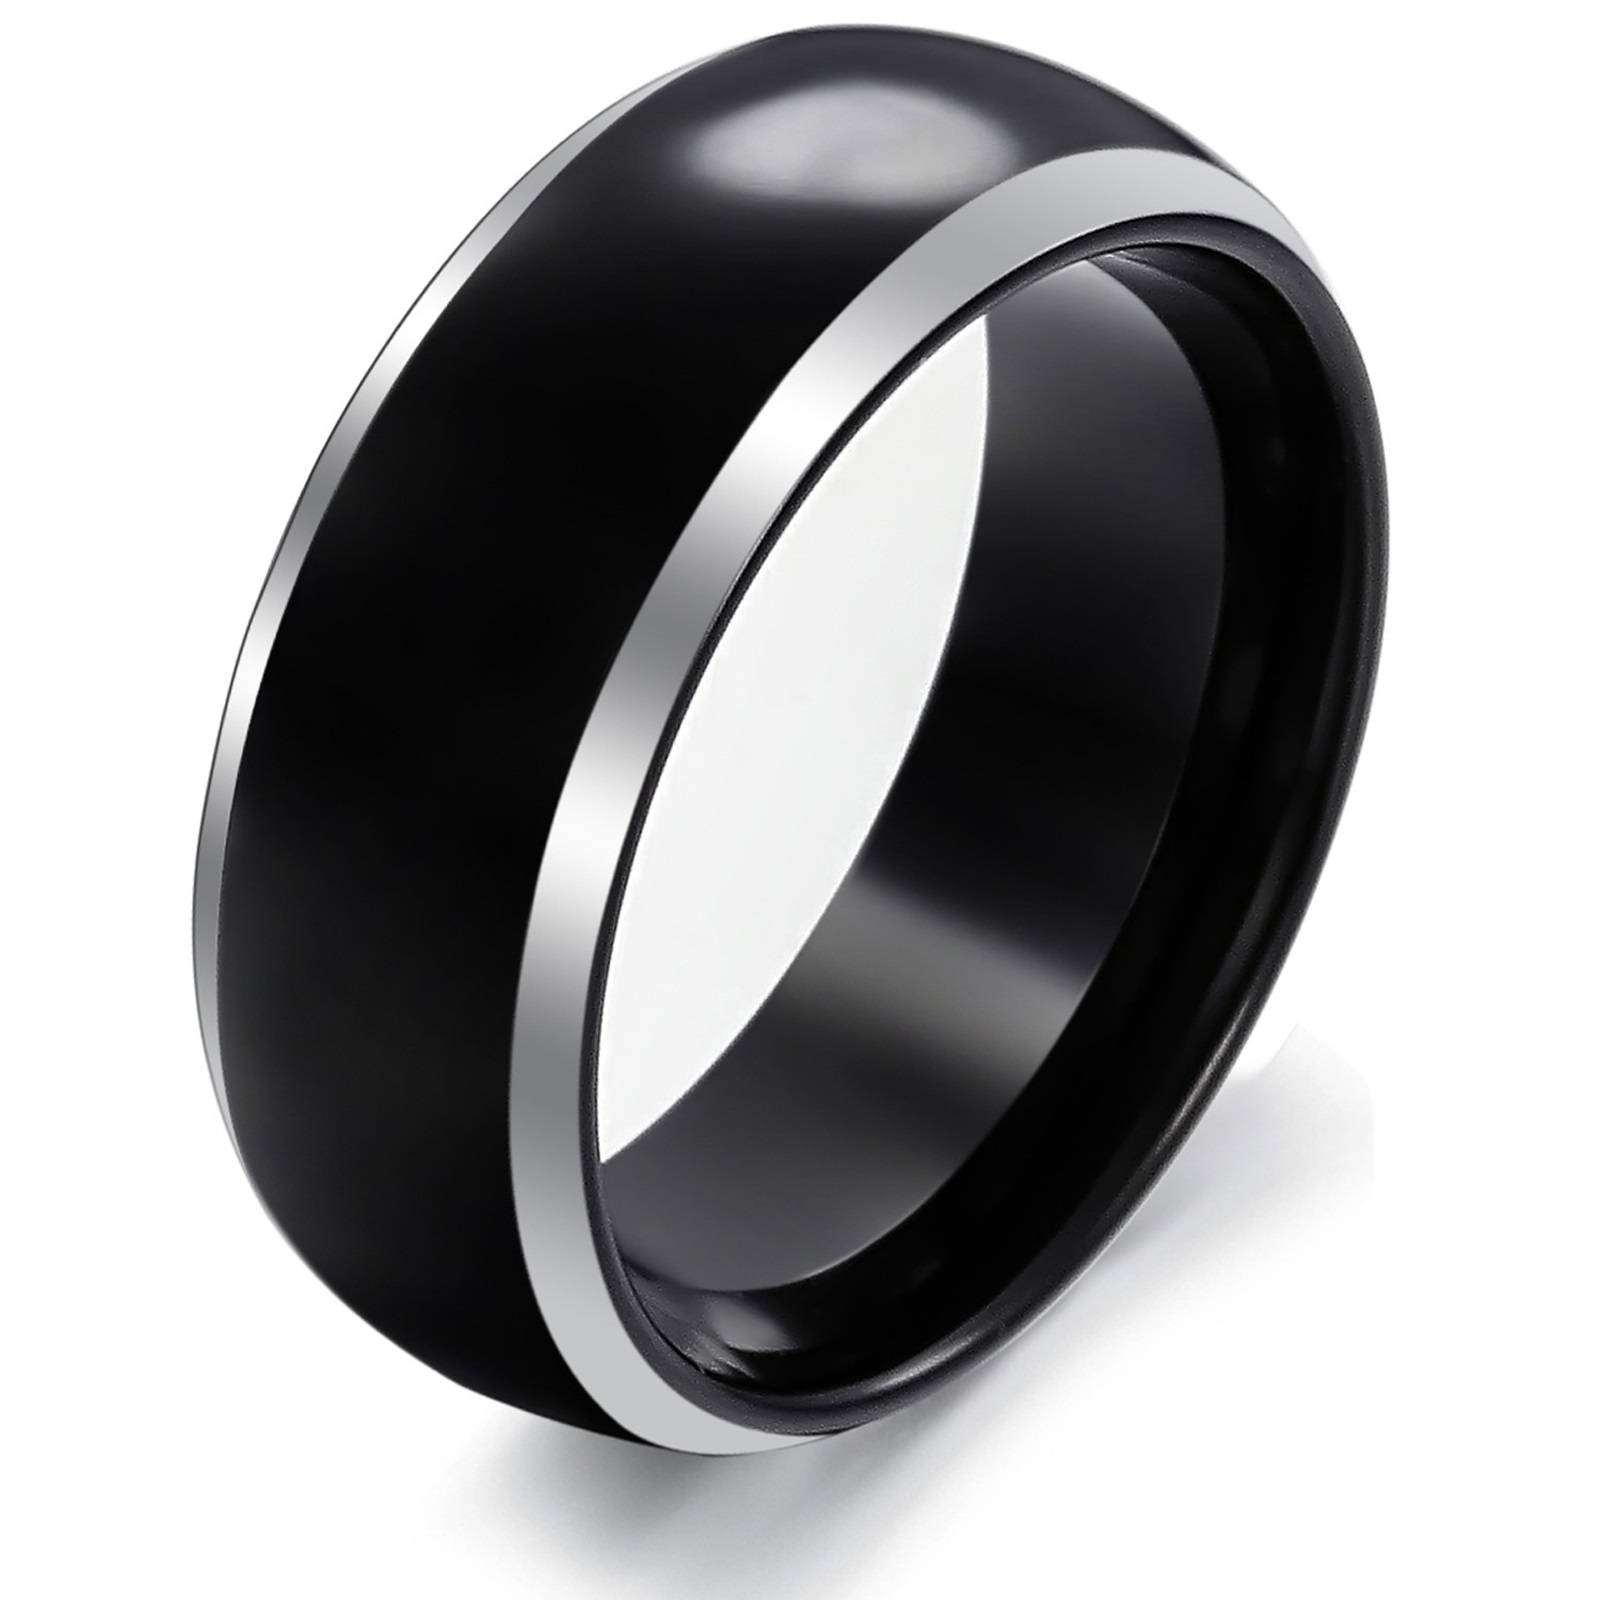 rings tactical awesome ashworthmairsgroup of wedding mens collection recon black pictures elegant luxury